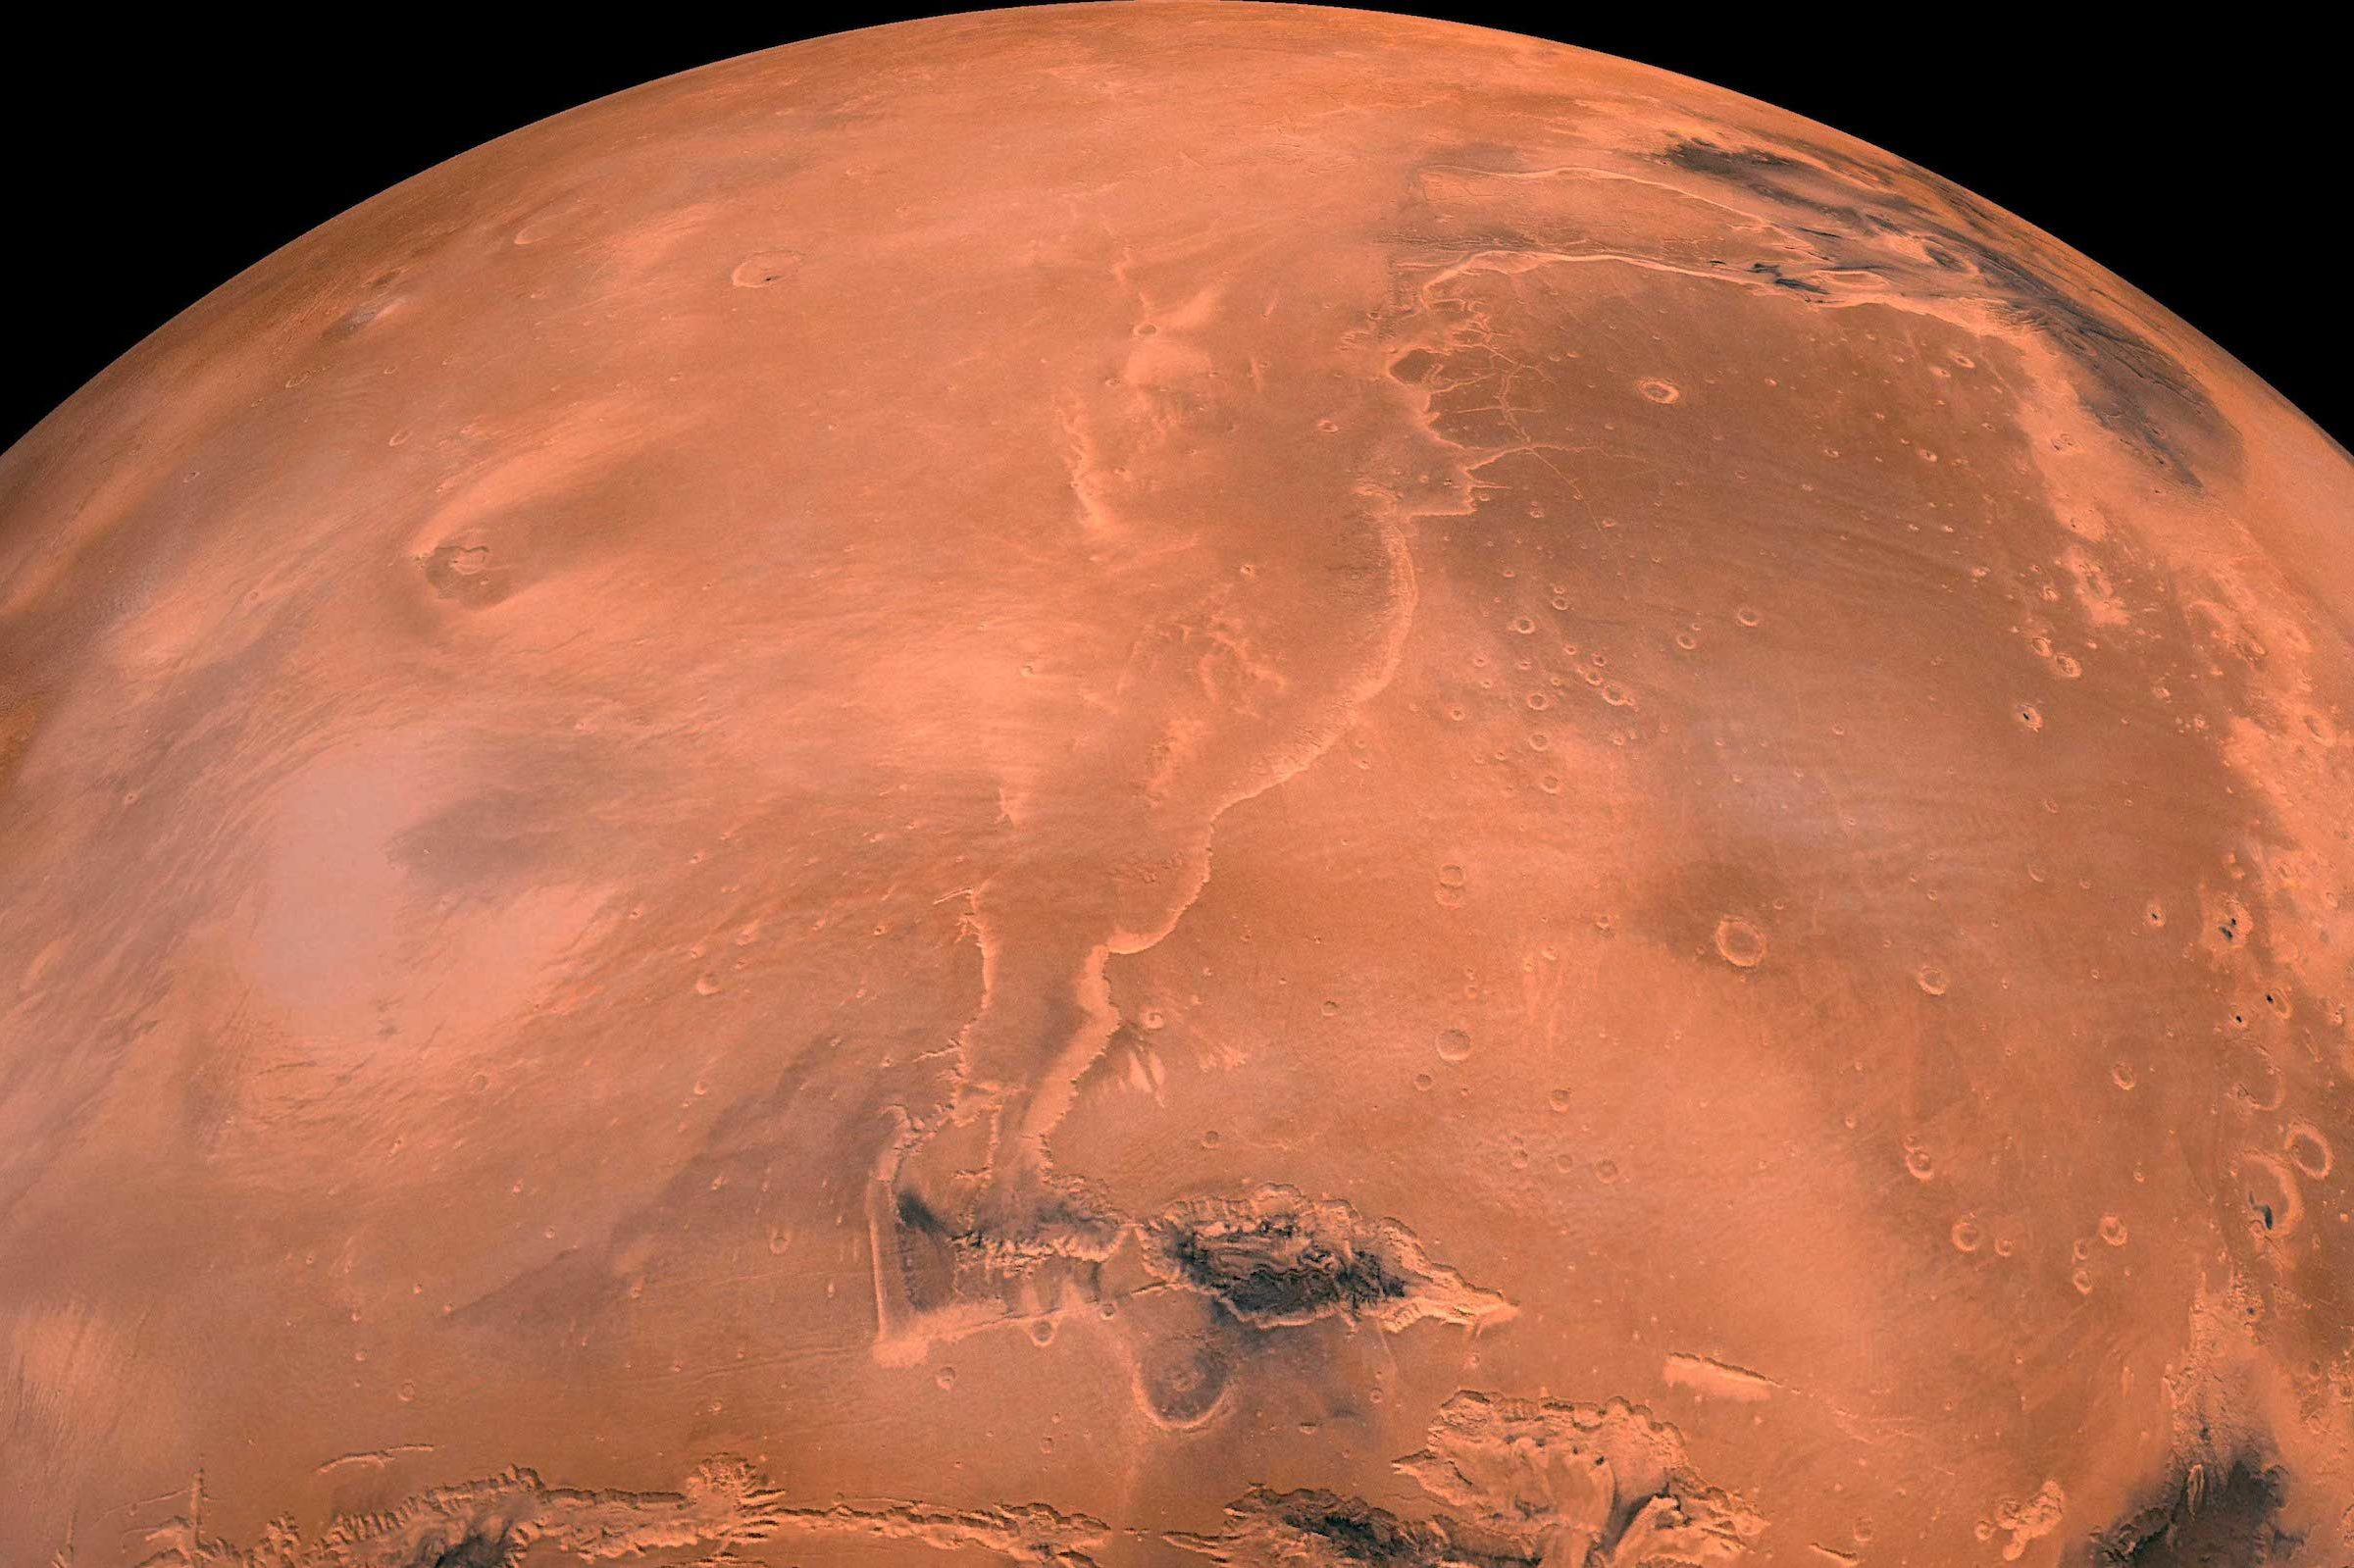 Climate & Space Prof. Atreya comments on Mars methane emissions for New York Times